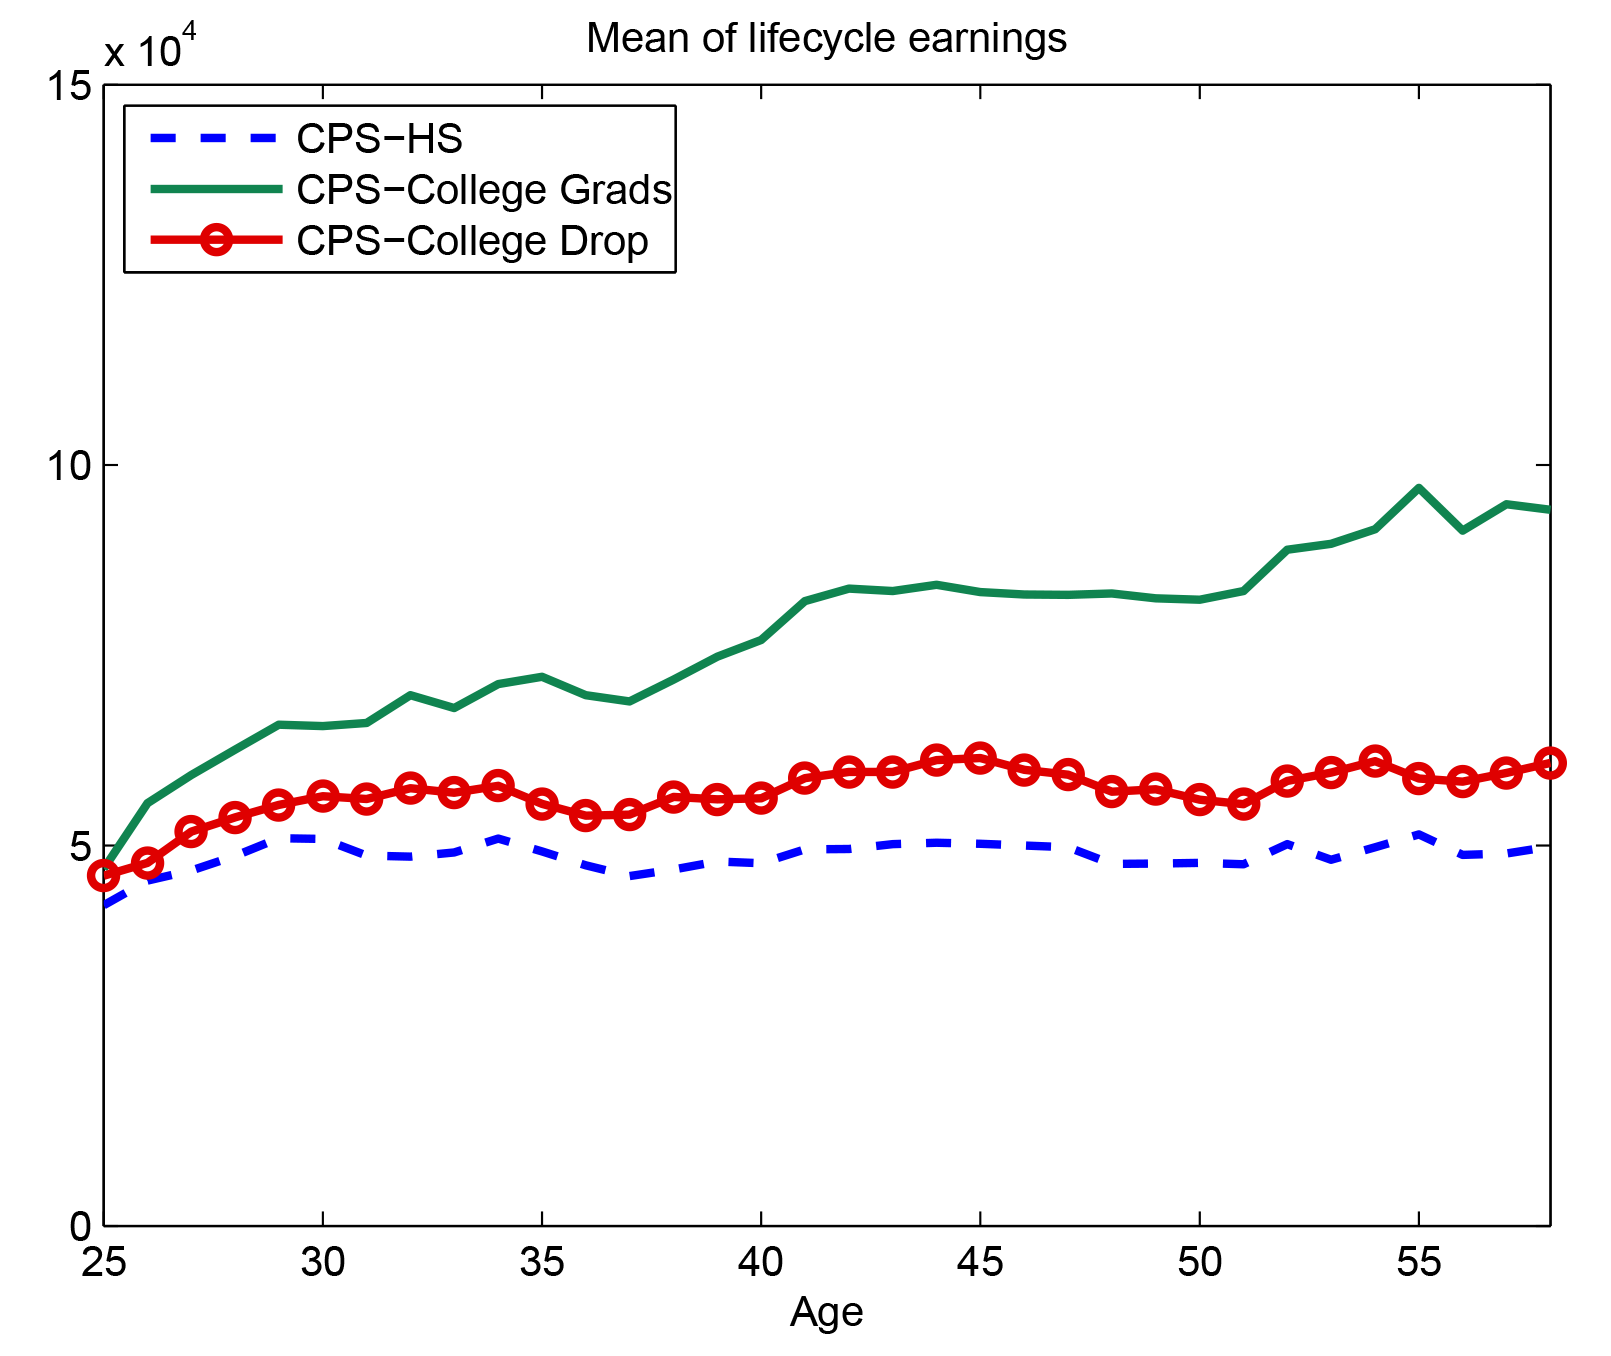 Figure 3: Life-Cycle Earnings by Education. See accessible link for data description.